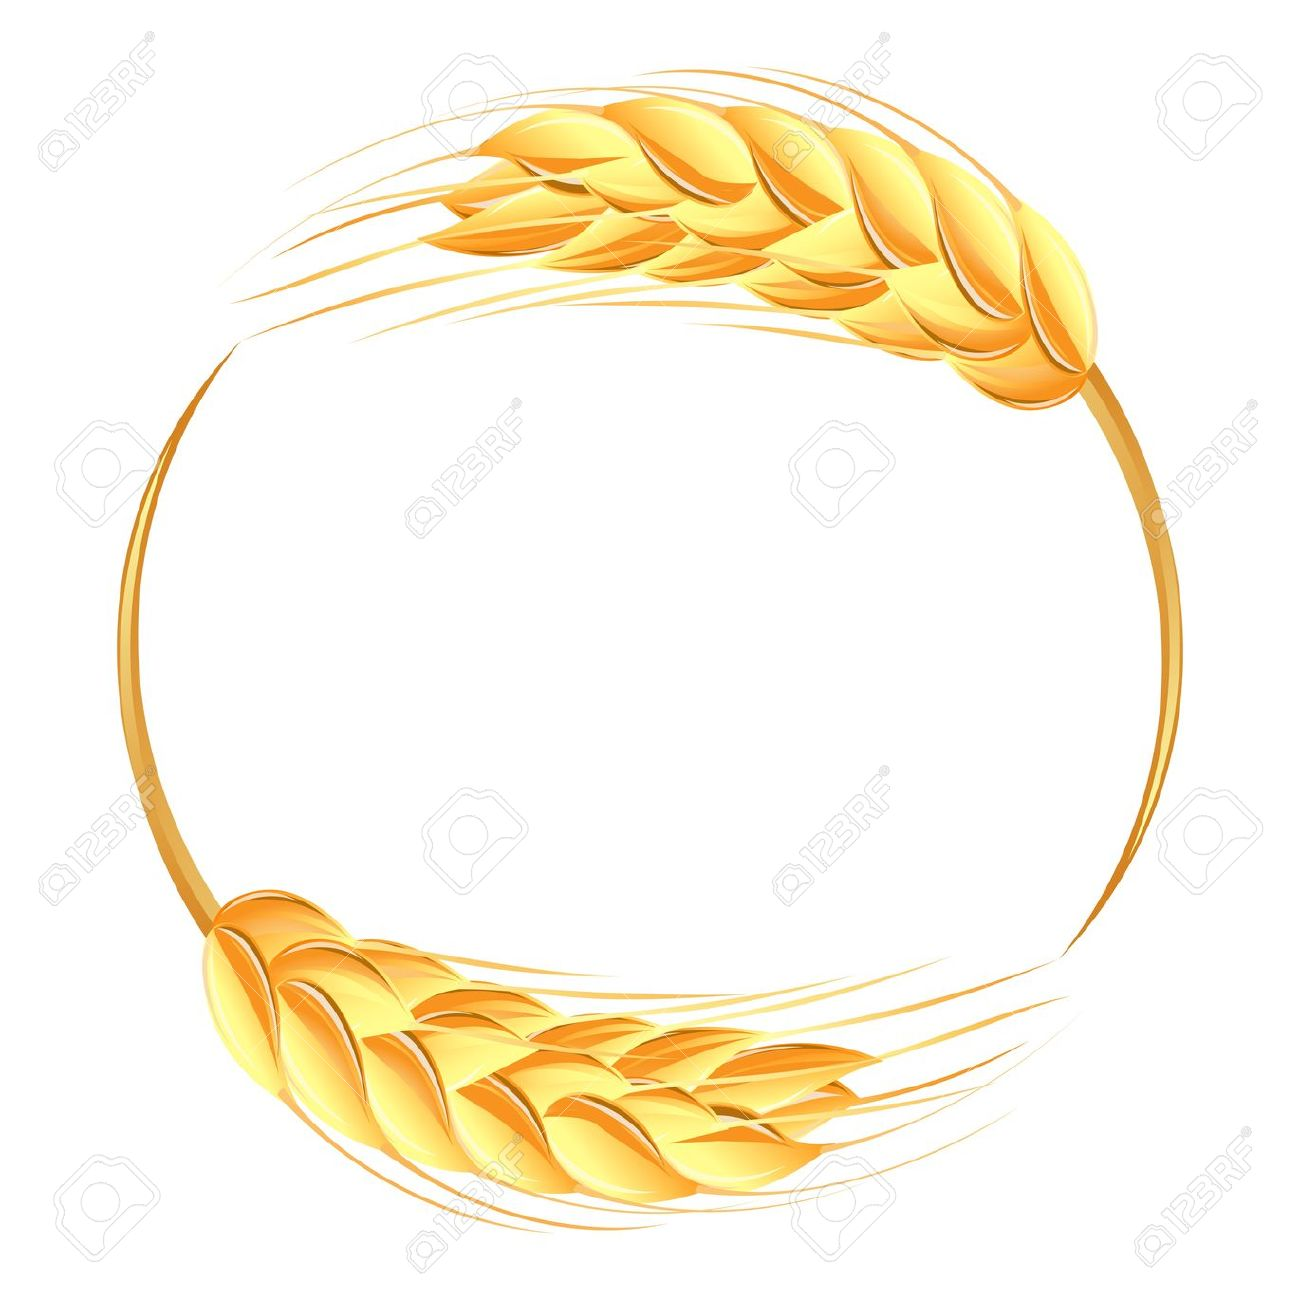 Wheat Ears Icon Royalty Free Cliparts, Vectors, And Stock.